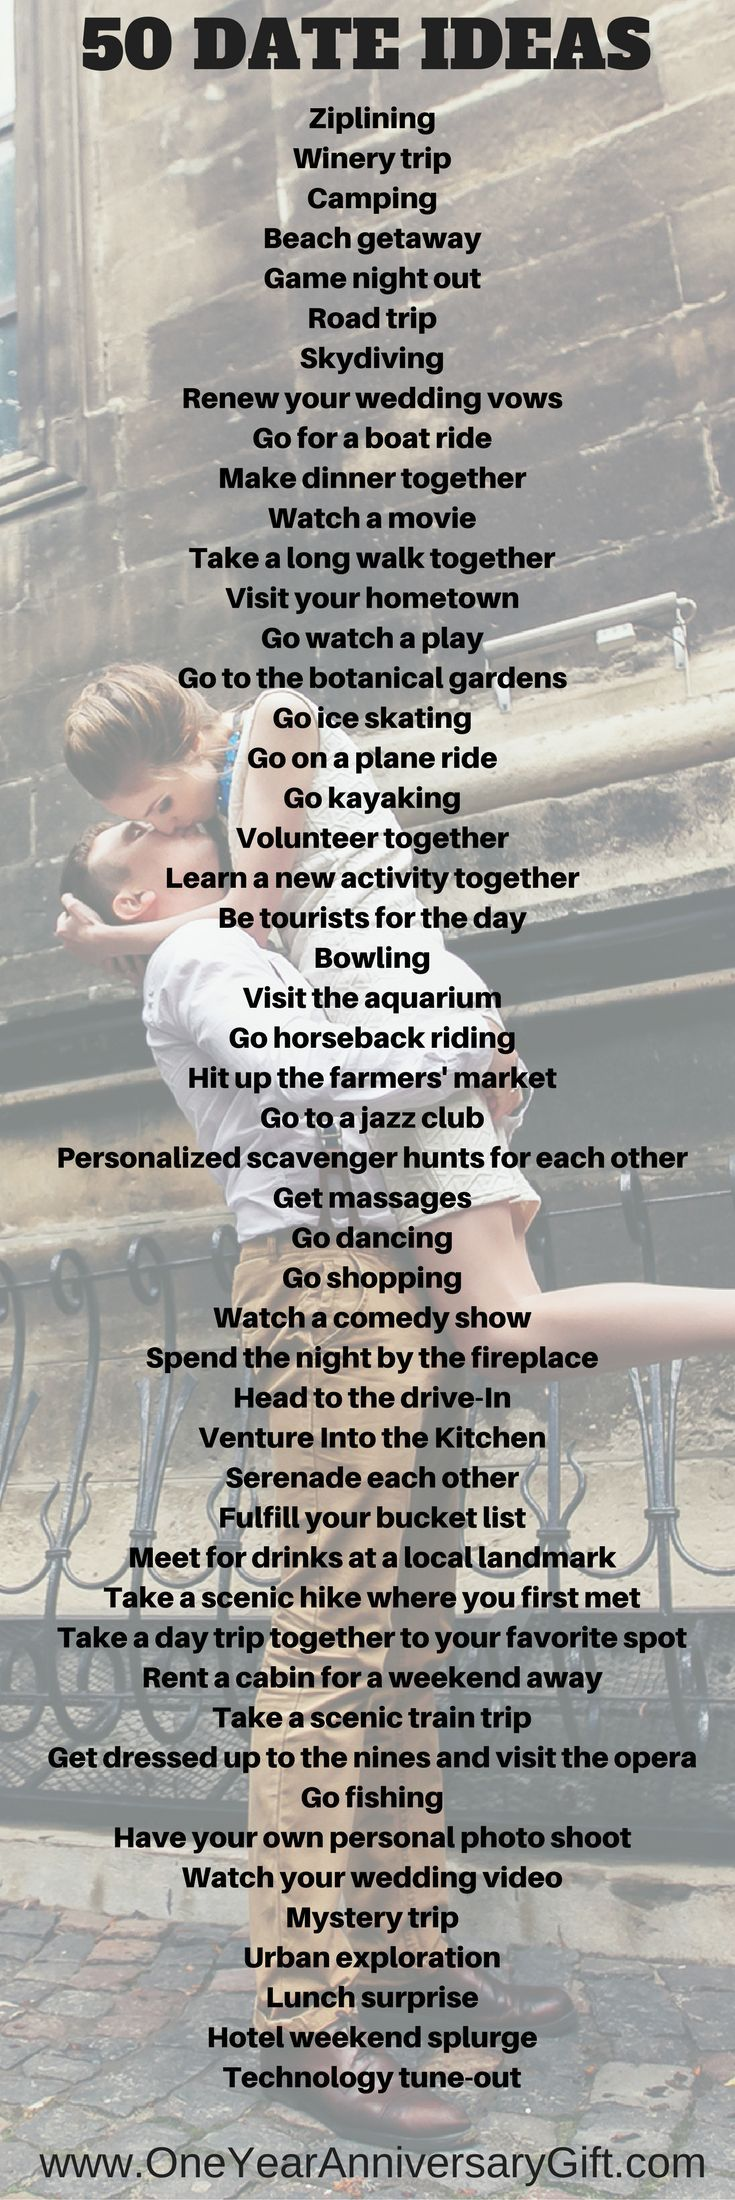 Date ideas for one year anniversary